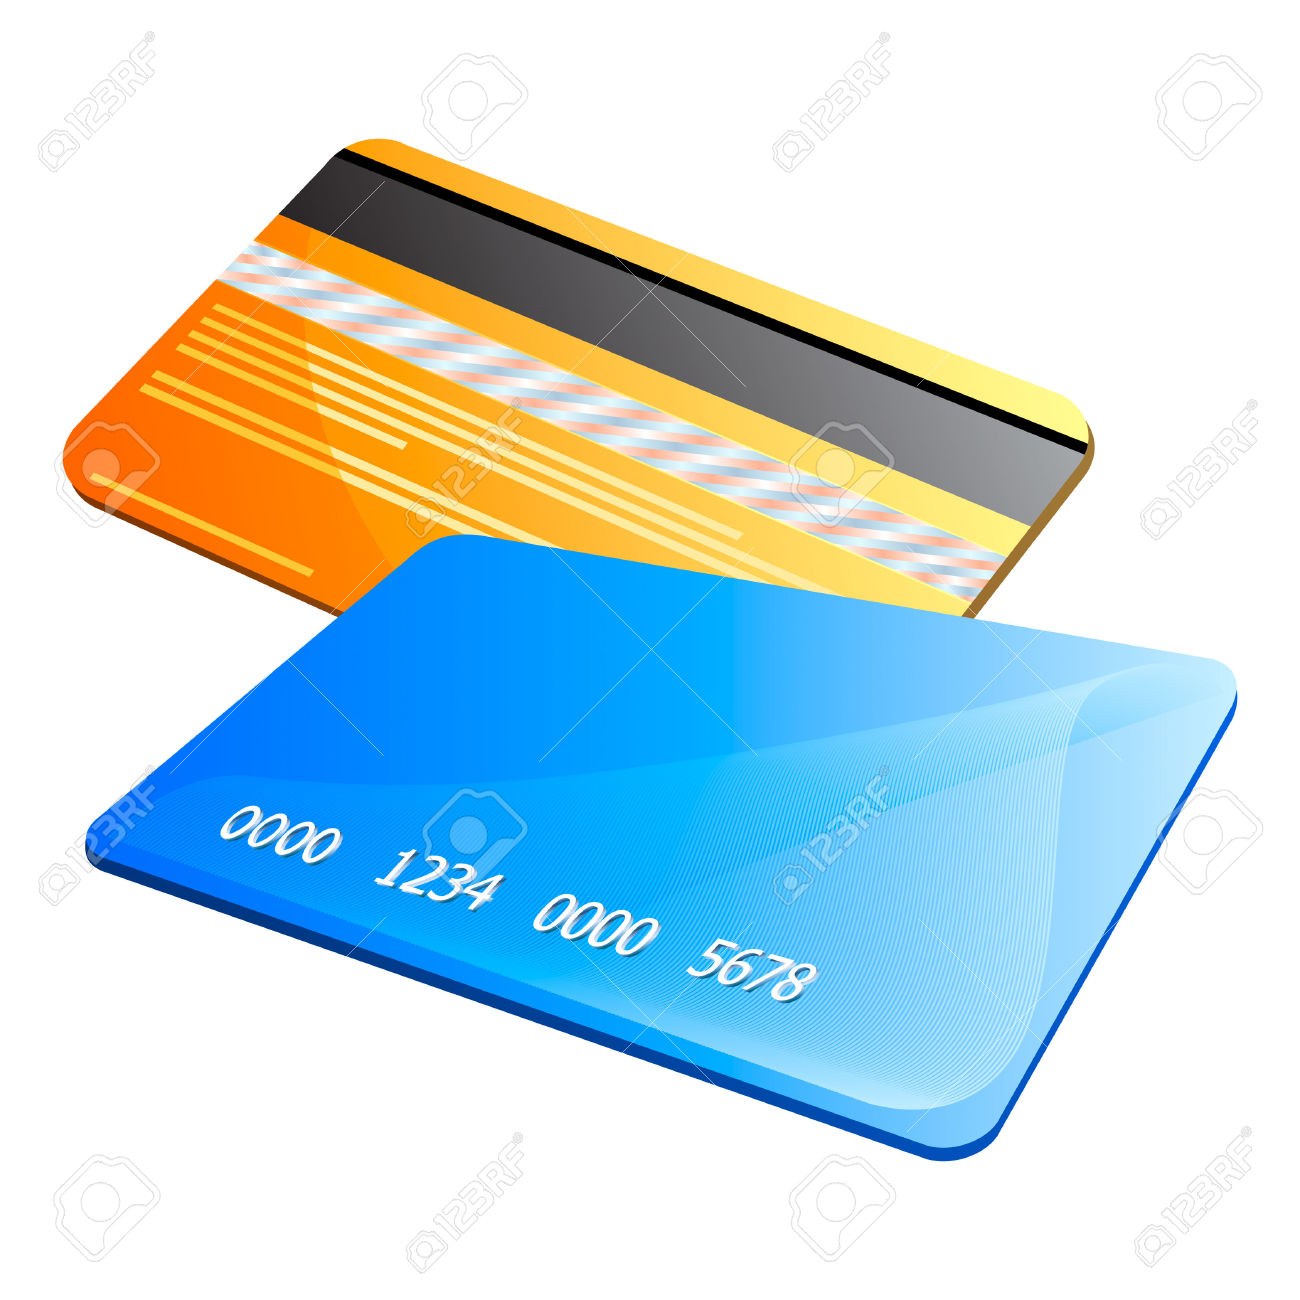 Visa credit card clipart.